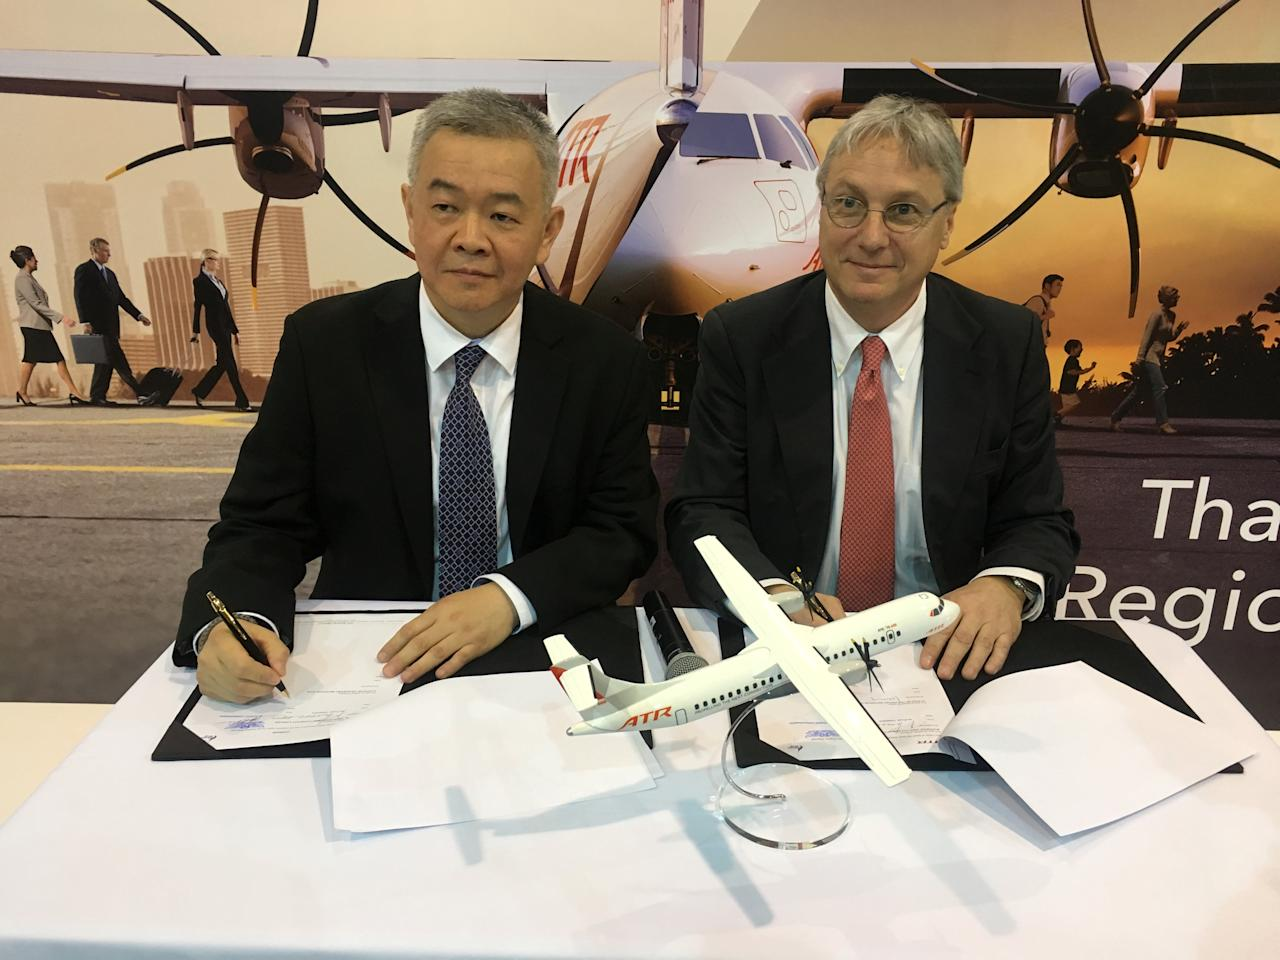 Anawat Leelawatwatana, senior vice-president for finance and accounting at Bangkok Airways, and ATR's Chief Executive Officer Christian Scherer, sign a deal for 4 ATR 72-600s at a ceremony at the Singapore Airshow February 7, 2018.      REUTERS/Brenda Goh